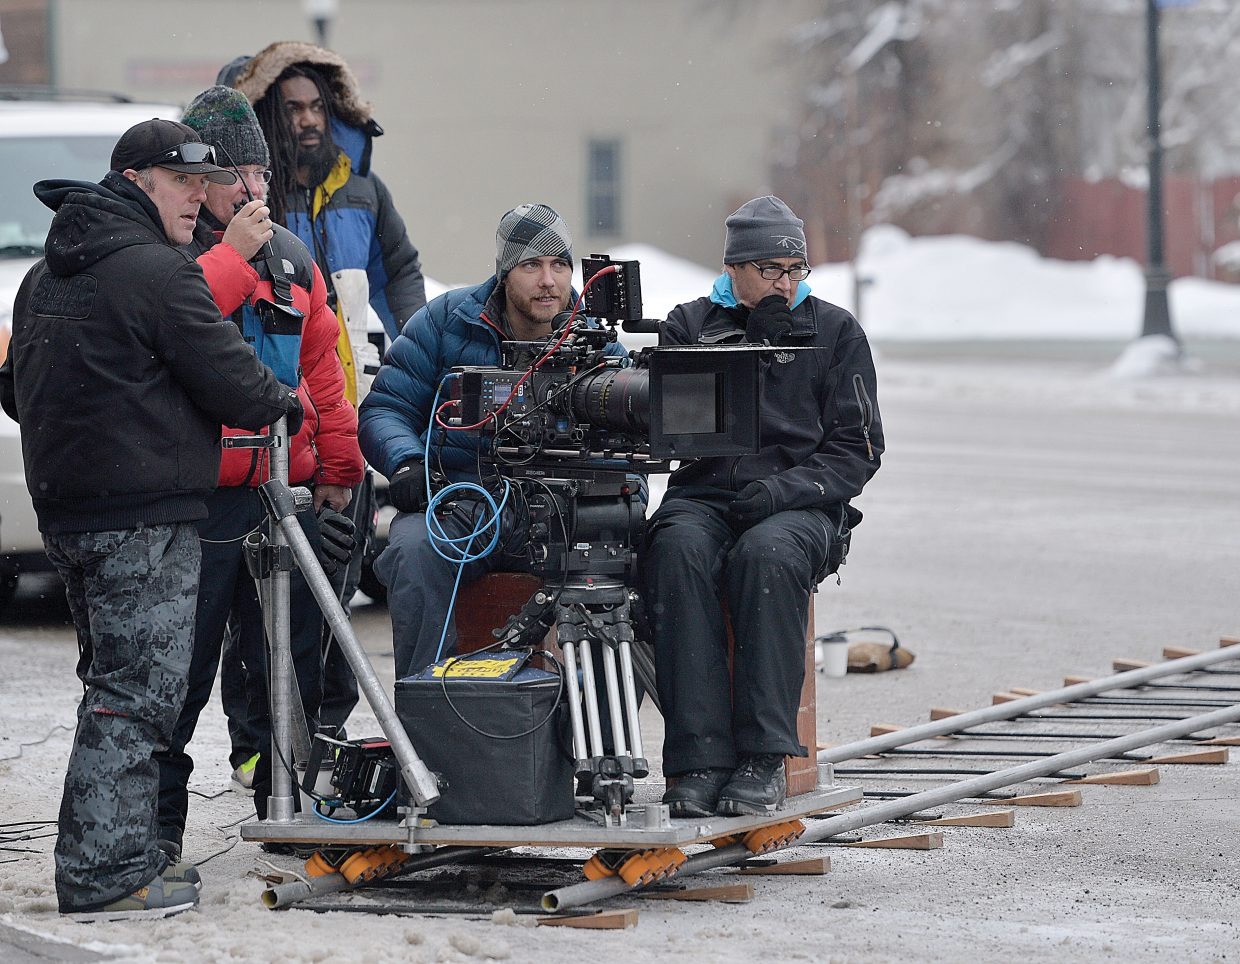 Cameraman Logan Schneider and a crew of others work to shoot a Ford commercial in downtown Steamboat Springs Thursday morning. The production company Ranch Exit Media chose Steamboat for its small town feel, great snow and the fact that director Chris Patterson is a former resident of Steamboat Springs.